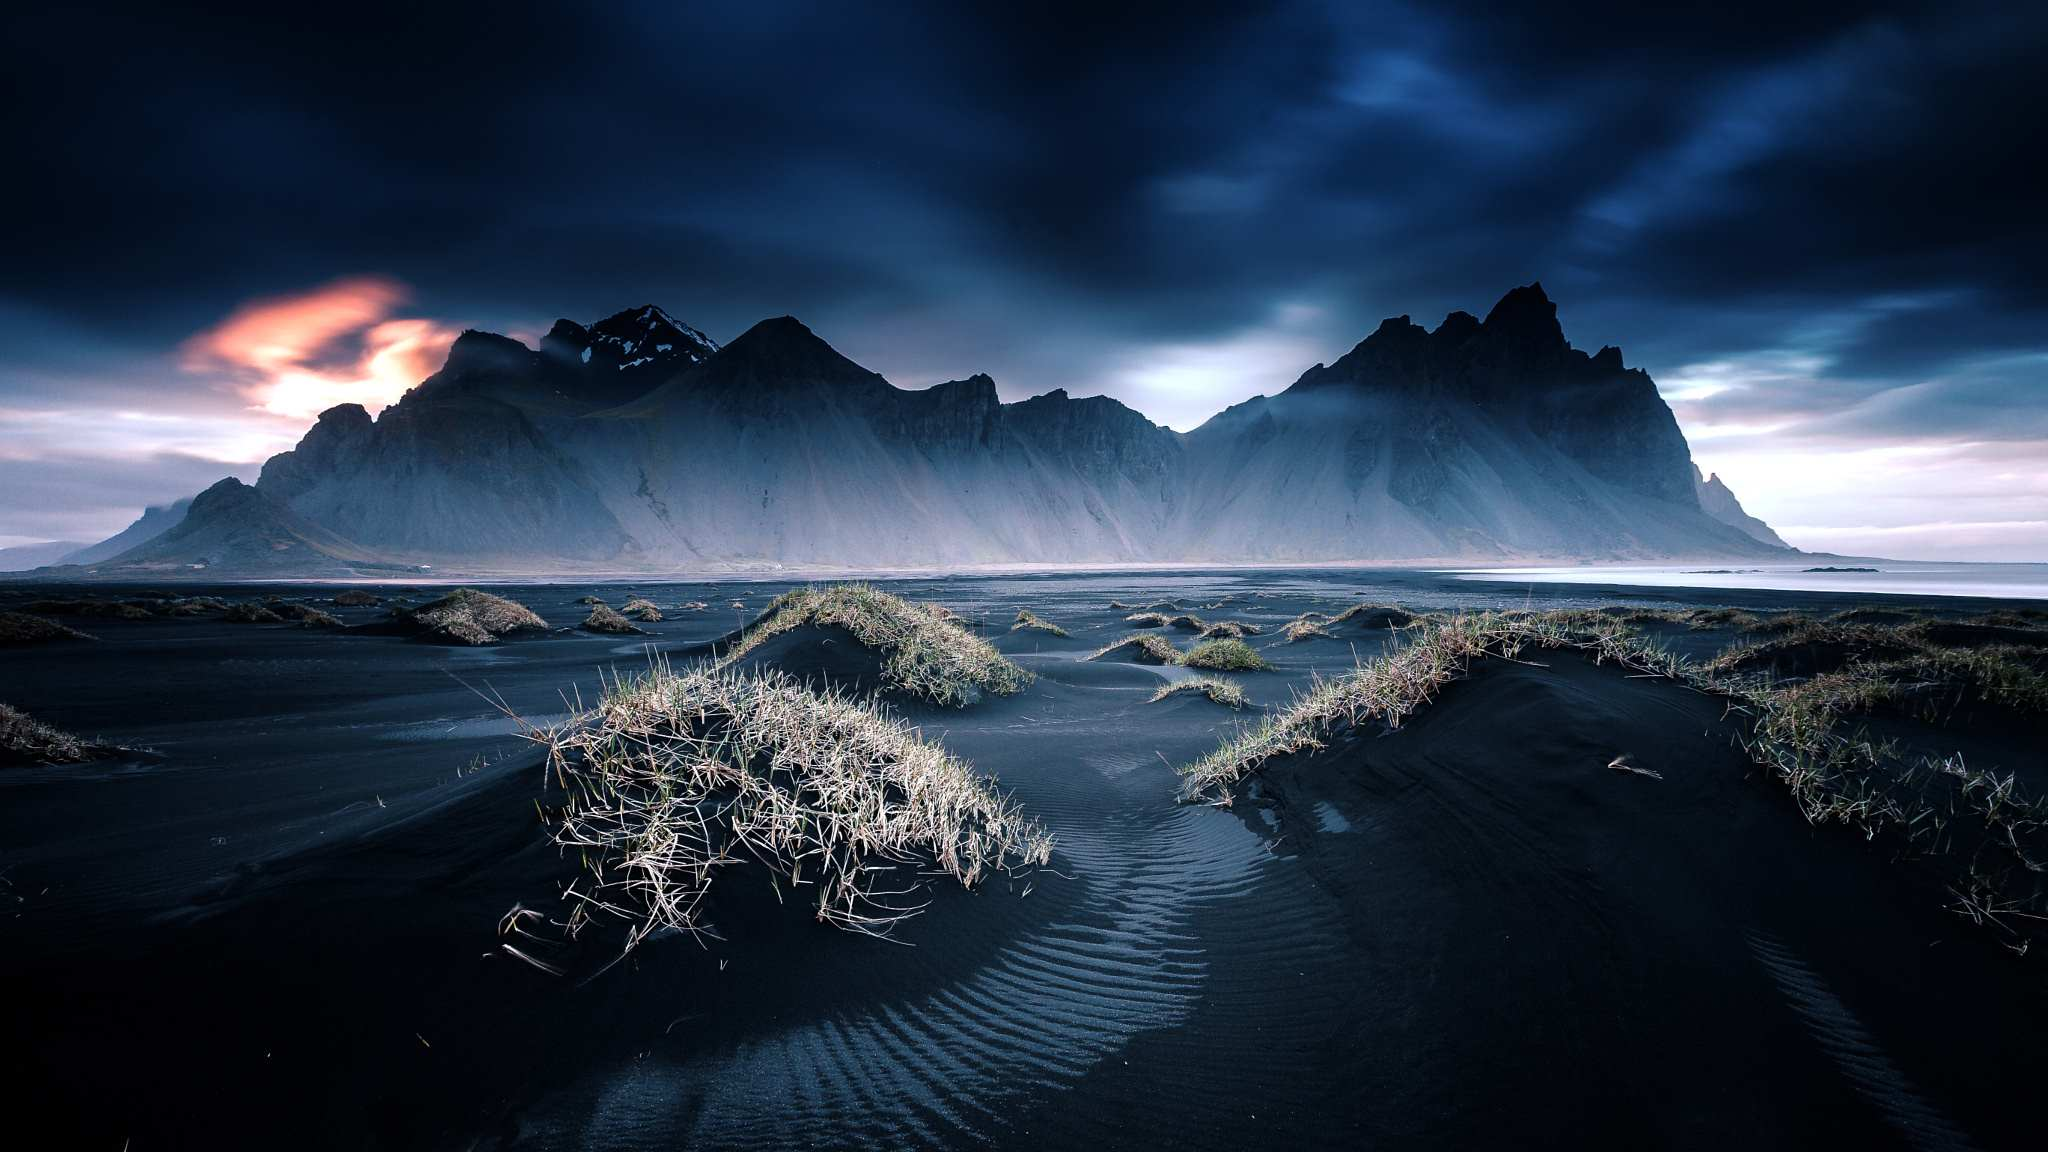 Incredible Landscapes by Wim Denijs